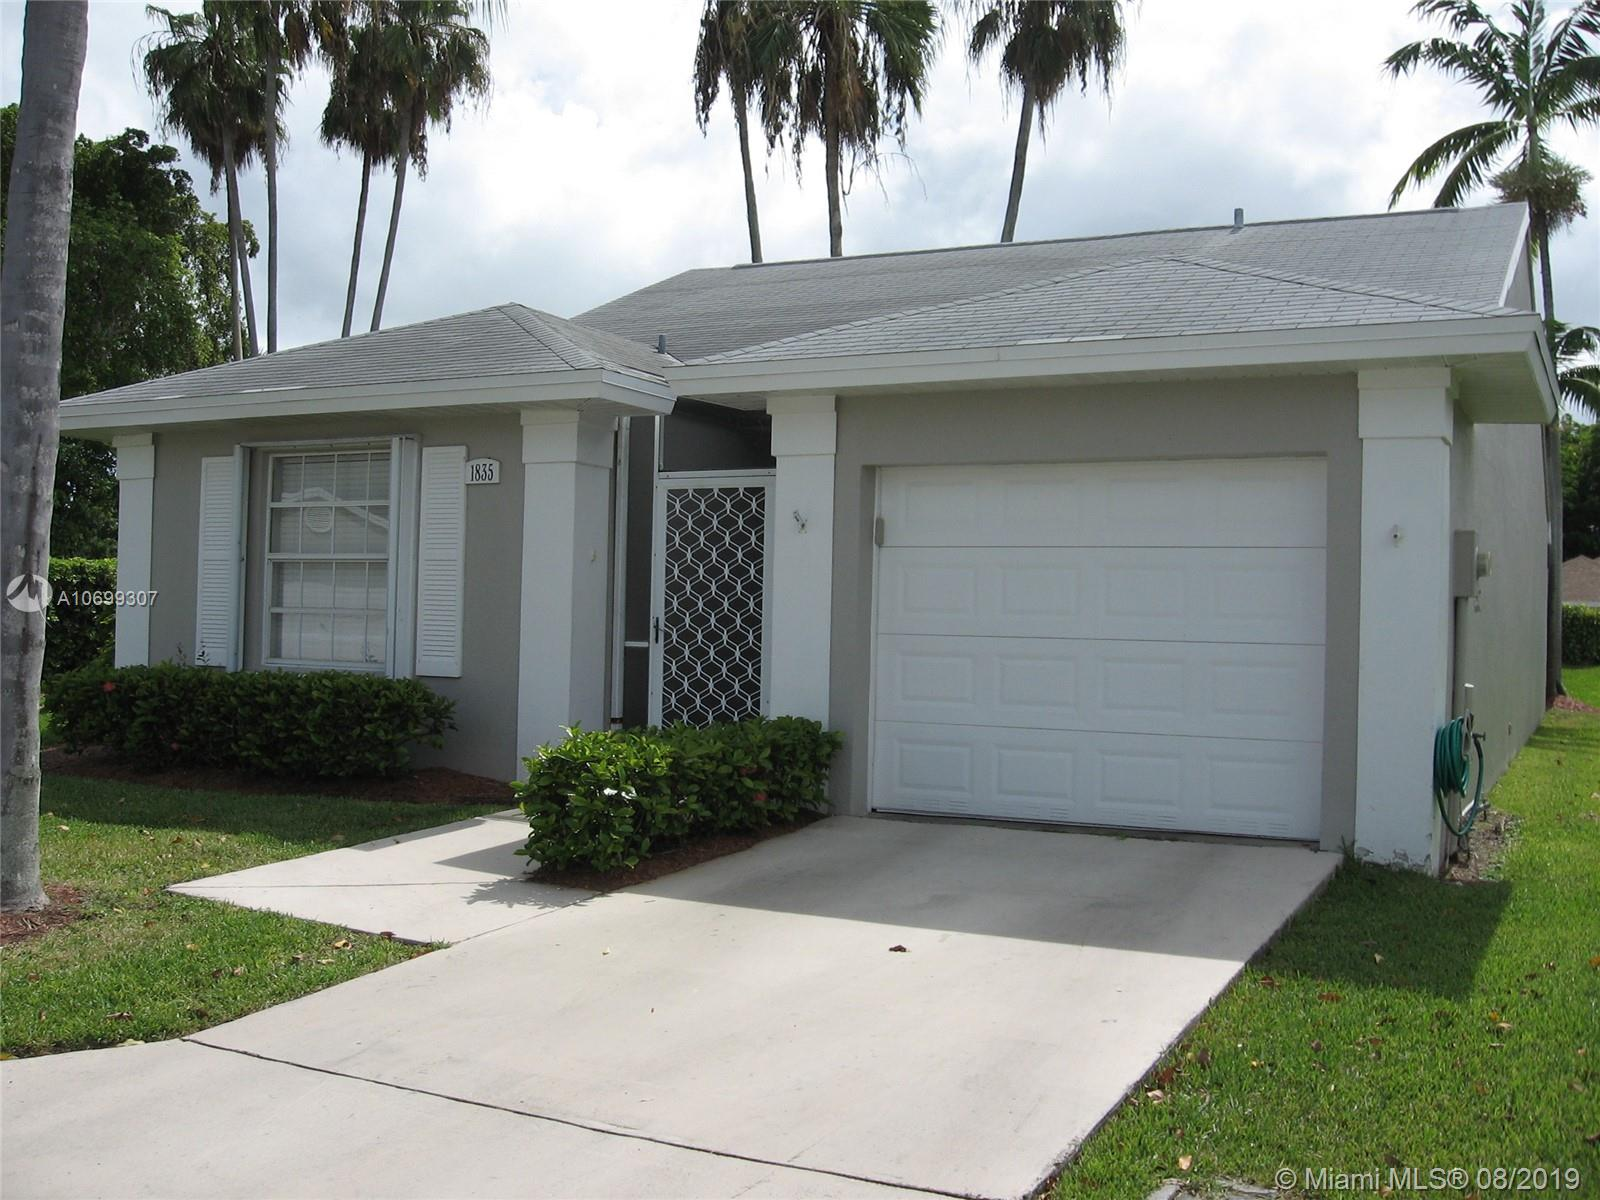 Keys-Gate, probably one of the best communities to live down south. HOA includes cable TV & internet ATT-U-VERSE, full lawn services, home alarm by ATT, house painted outside every 7 years, all trash pick-up, lots of walking trails and full resort style clubhouse